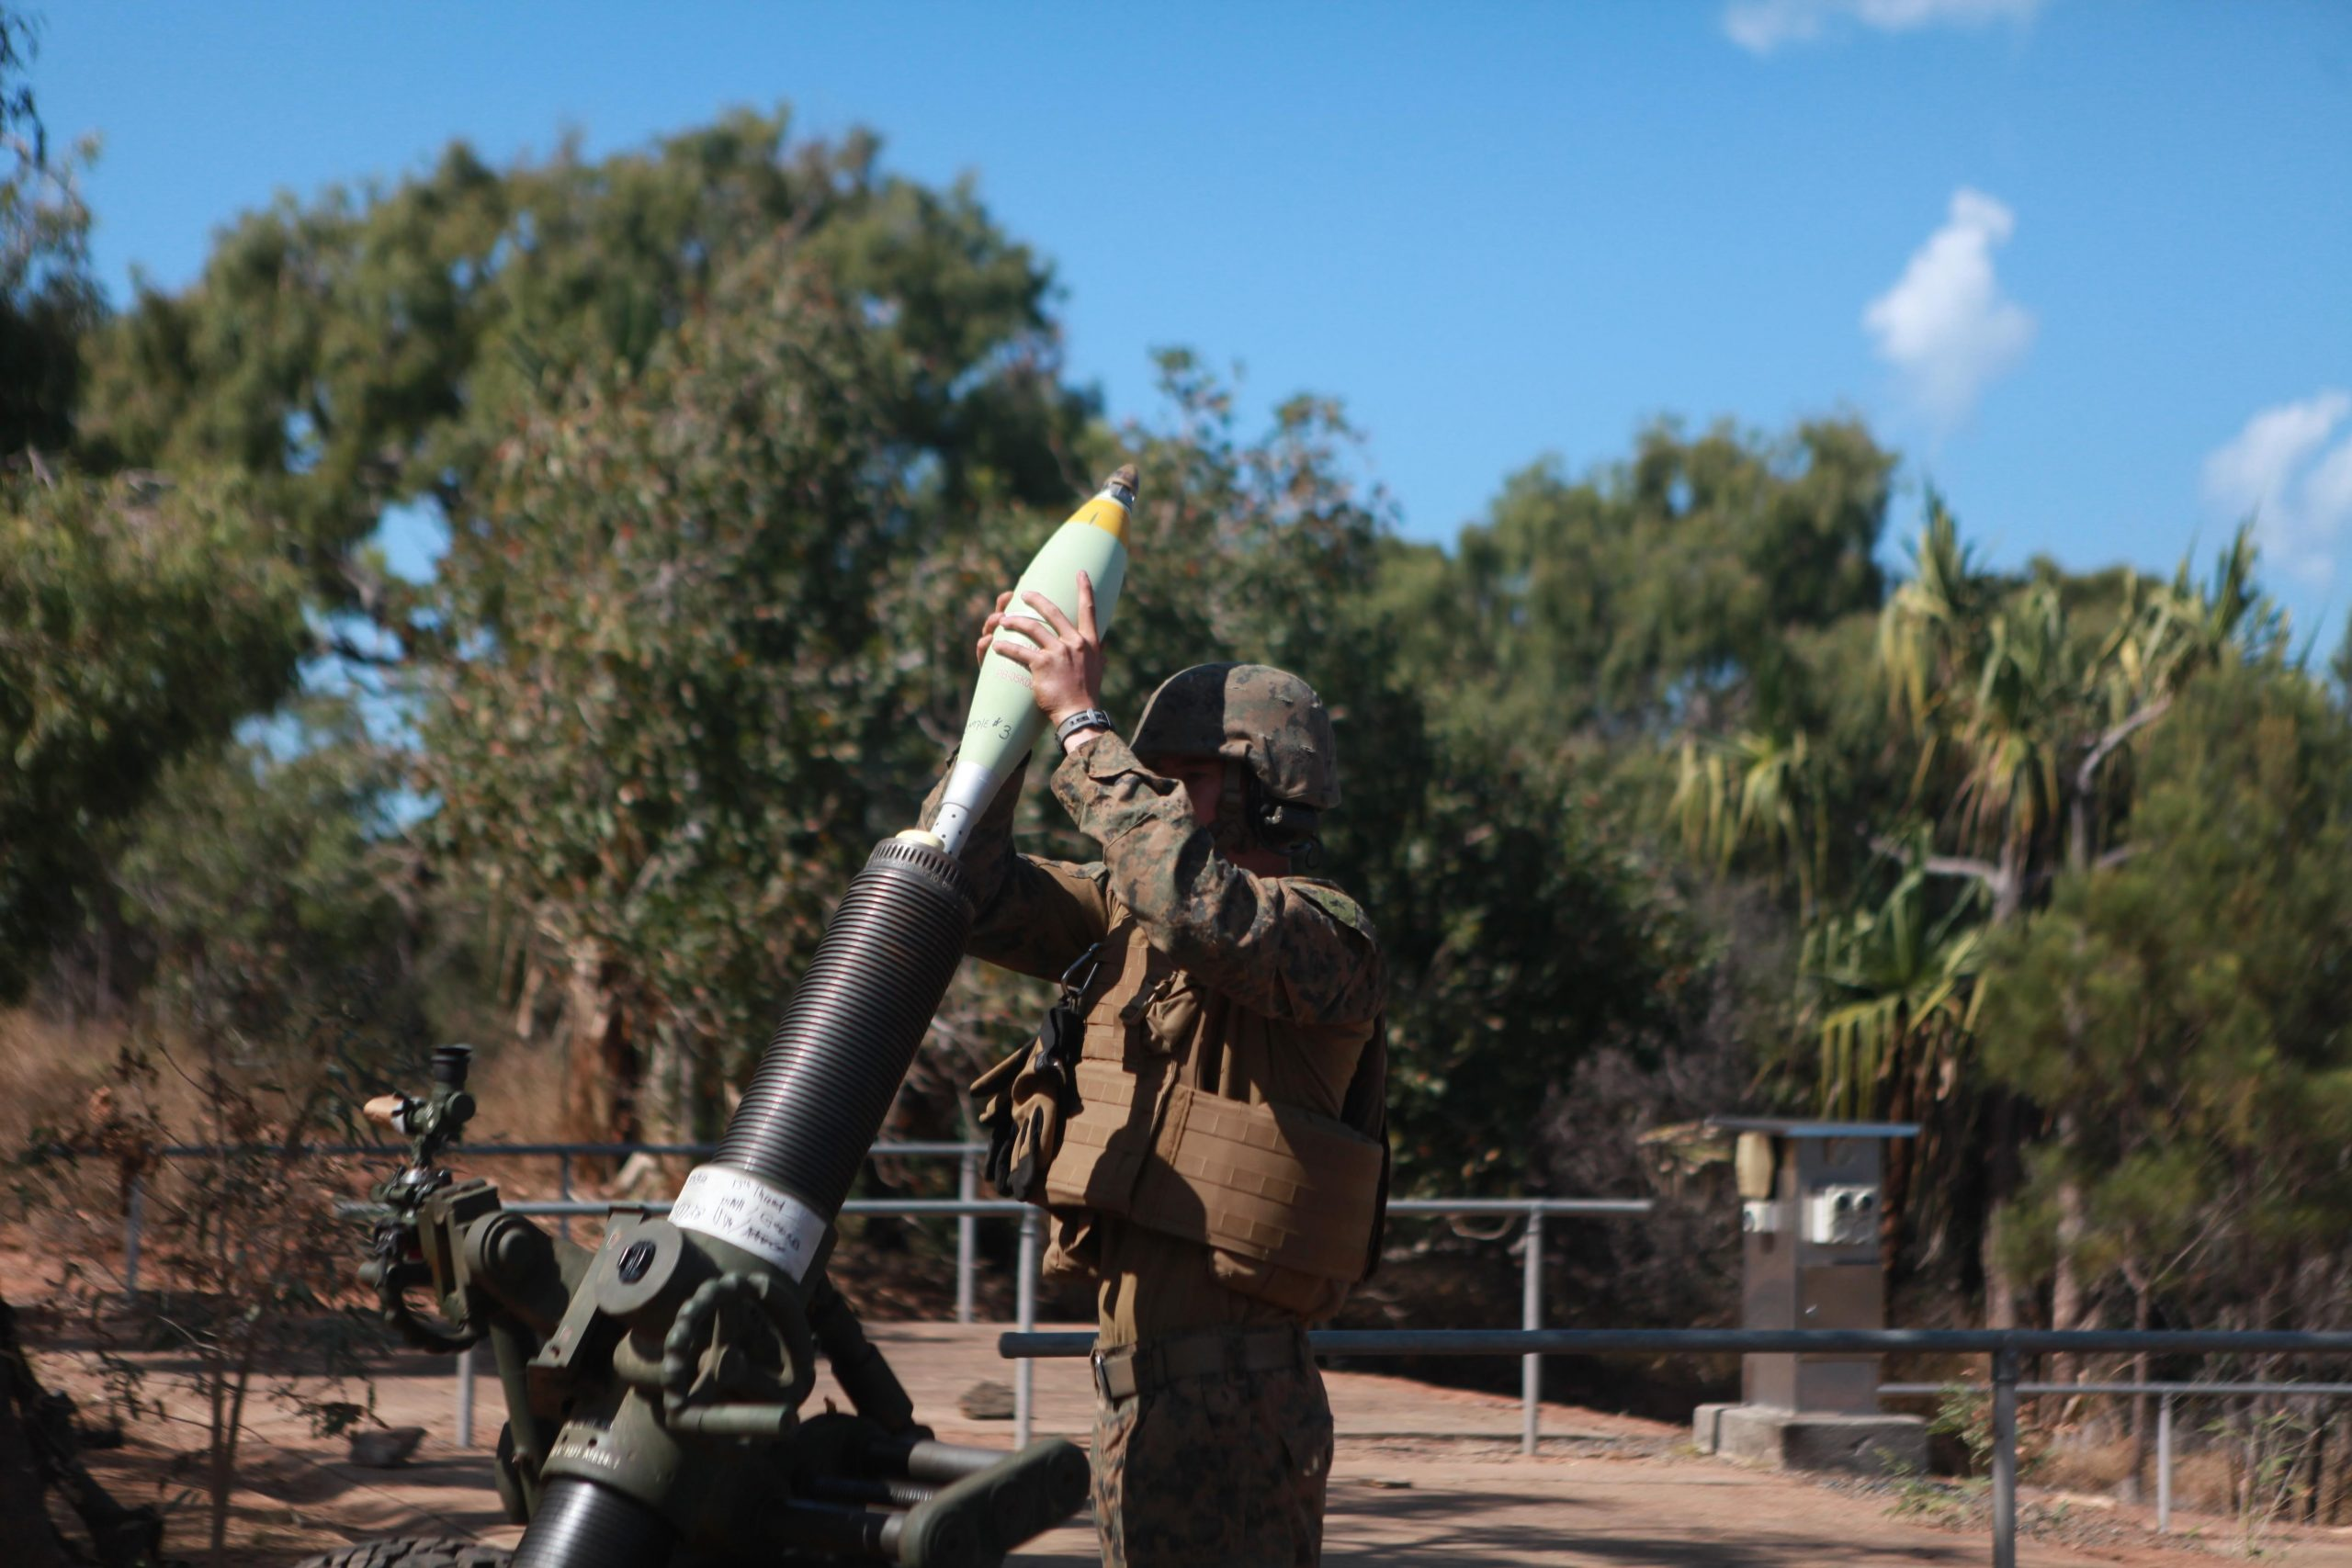 A Marine with the 120mm mortar platoon for Echo Battery, Battalion Landing Team 2nd Battalion, 4th Marines, 31st Marine Expeditionary Unit, loads a round into an M327 120mm mortar during a combined artillery and close air support training exercise following the conclusion of Talisman Saber 2013 here, Aug. 3. The live-fire exercise provided effective and intense training to ensure Australian and U.S. forces foster and sustain cooperative relationships that enhance regional security, stability and prosperity. The 31st MEU is the Marine Corps' force in readiness for the Asia-Pacific region and the only continuously forward-deployed MEU.